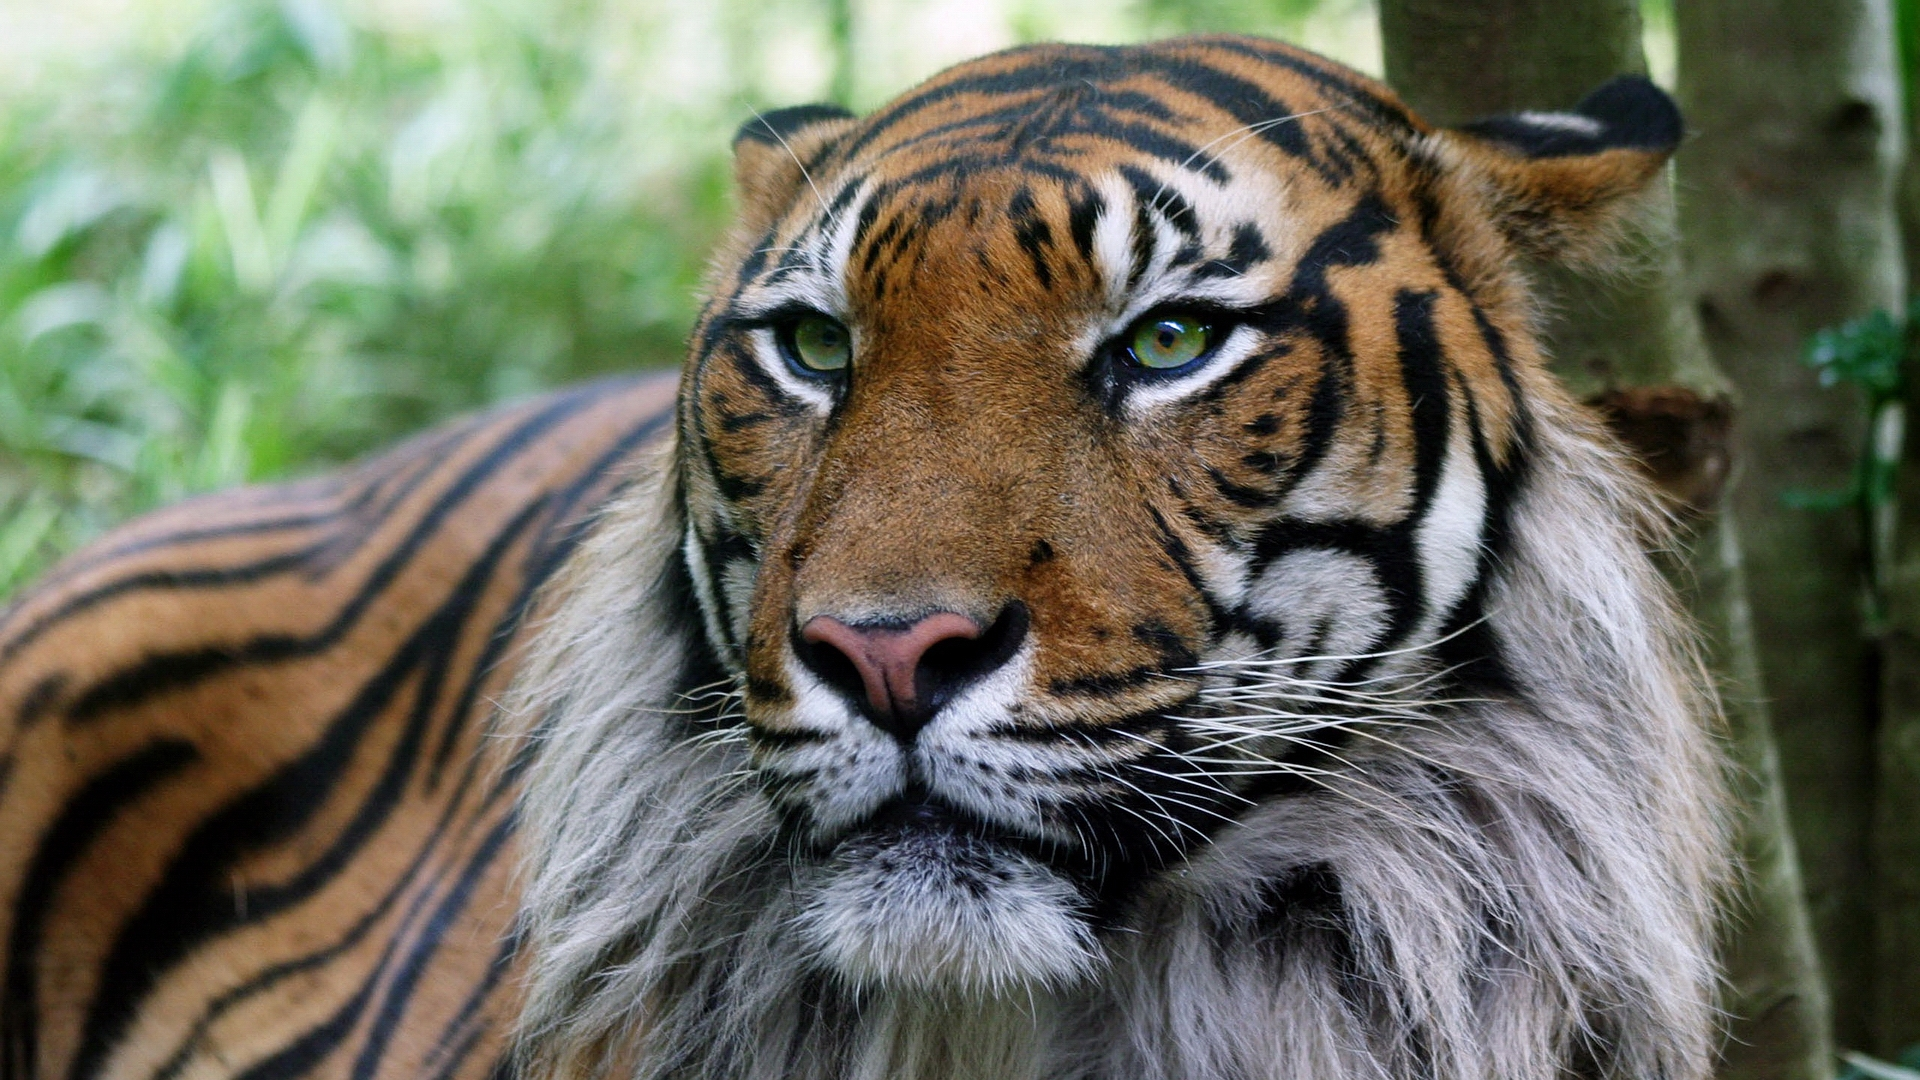 37710 download wallpaper Animals, Tigers screensavers and pictures for free